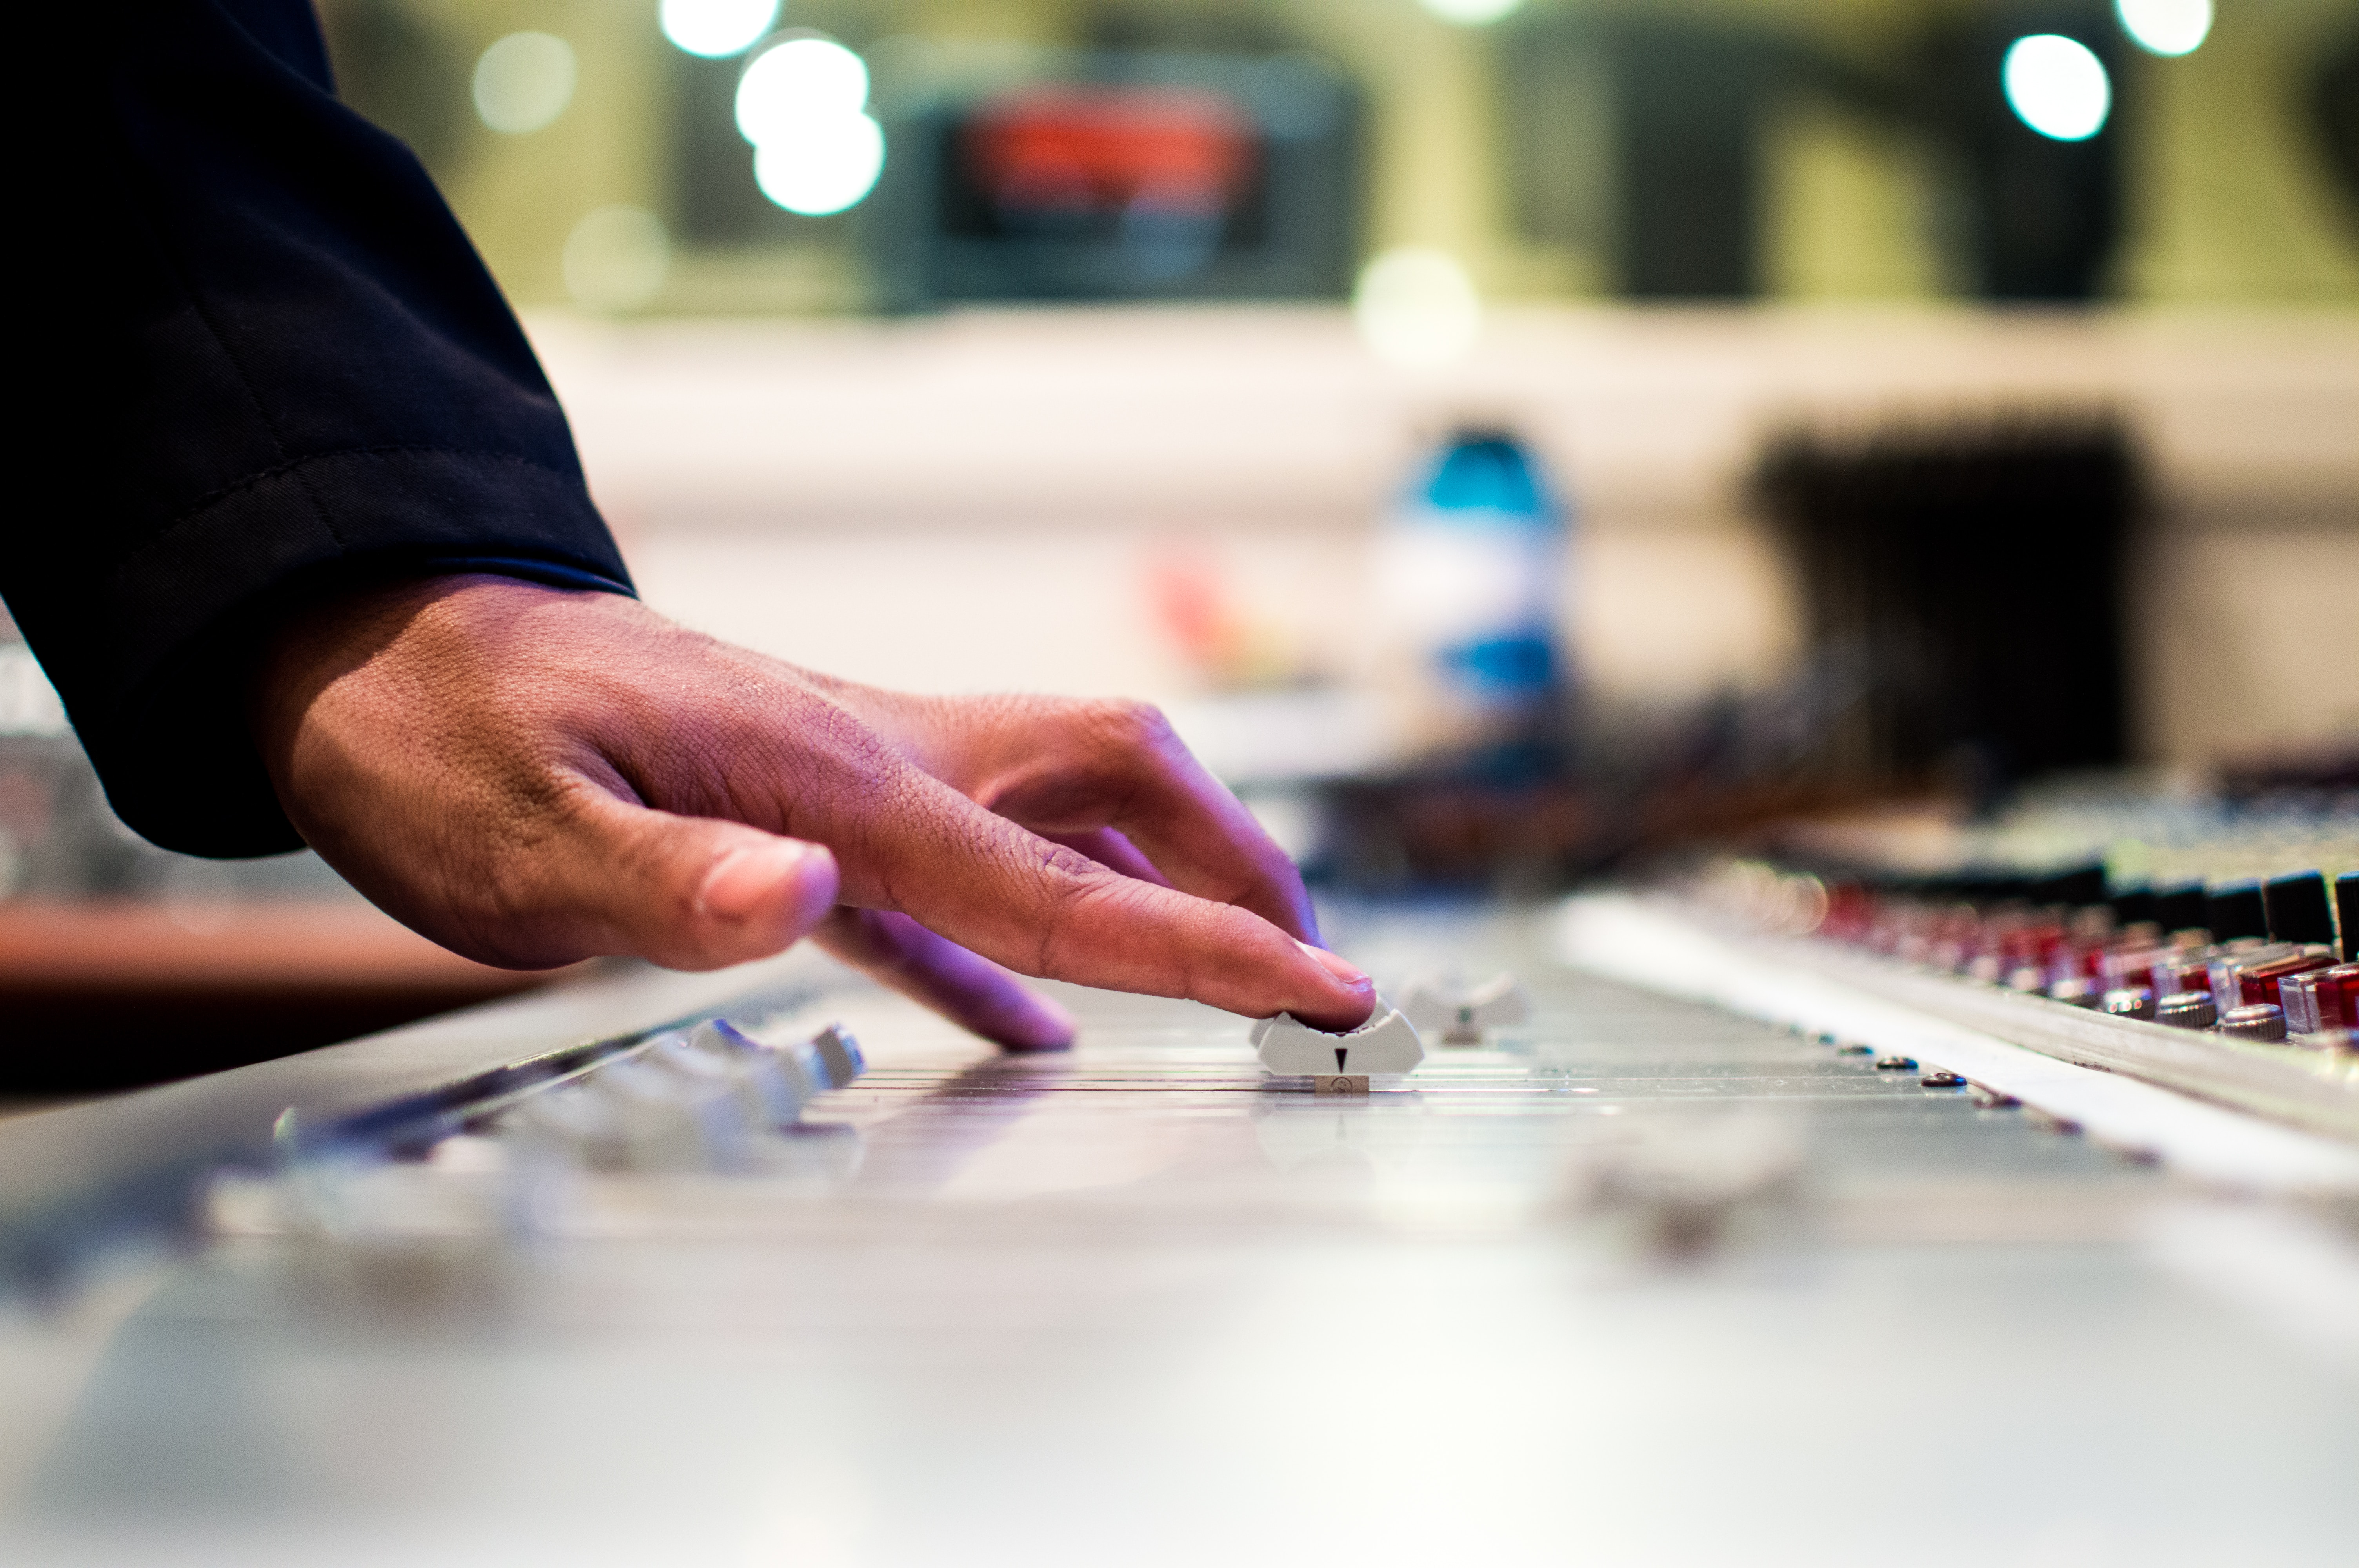 5 tips for making radio playlists